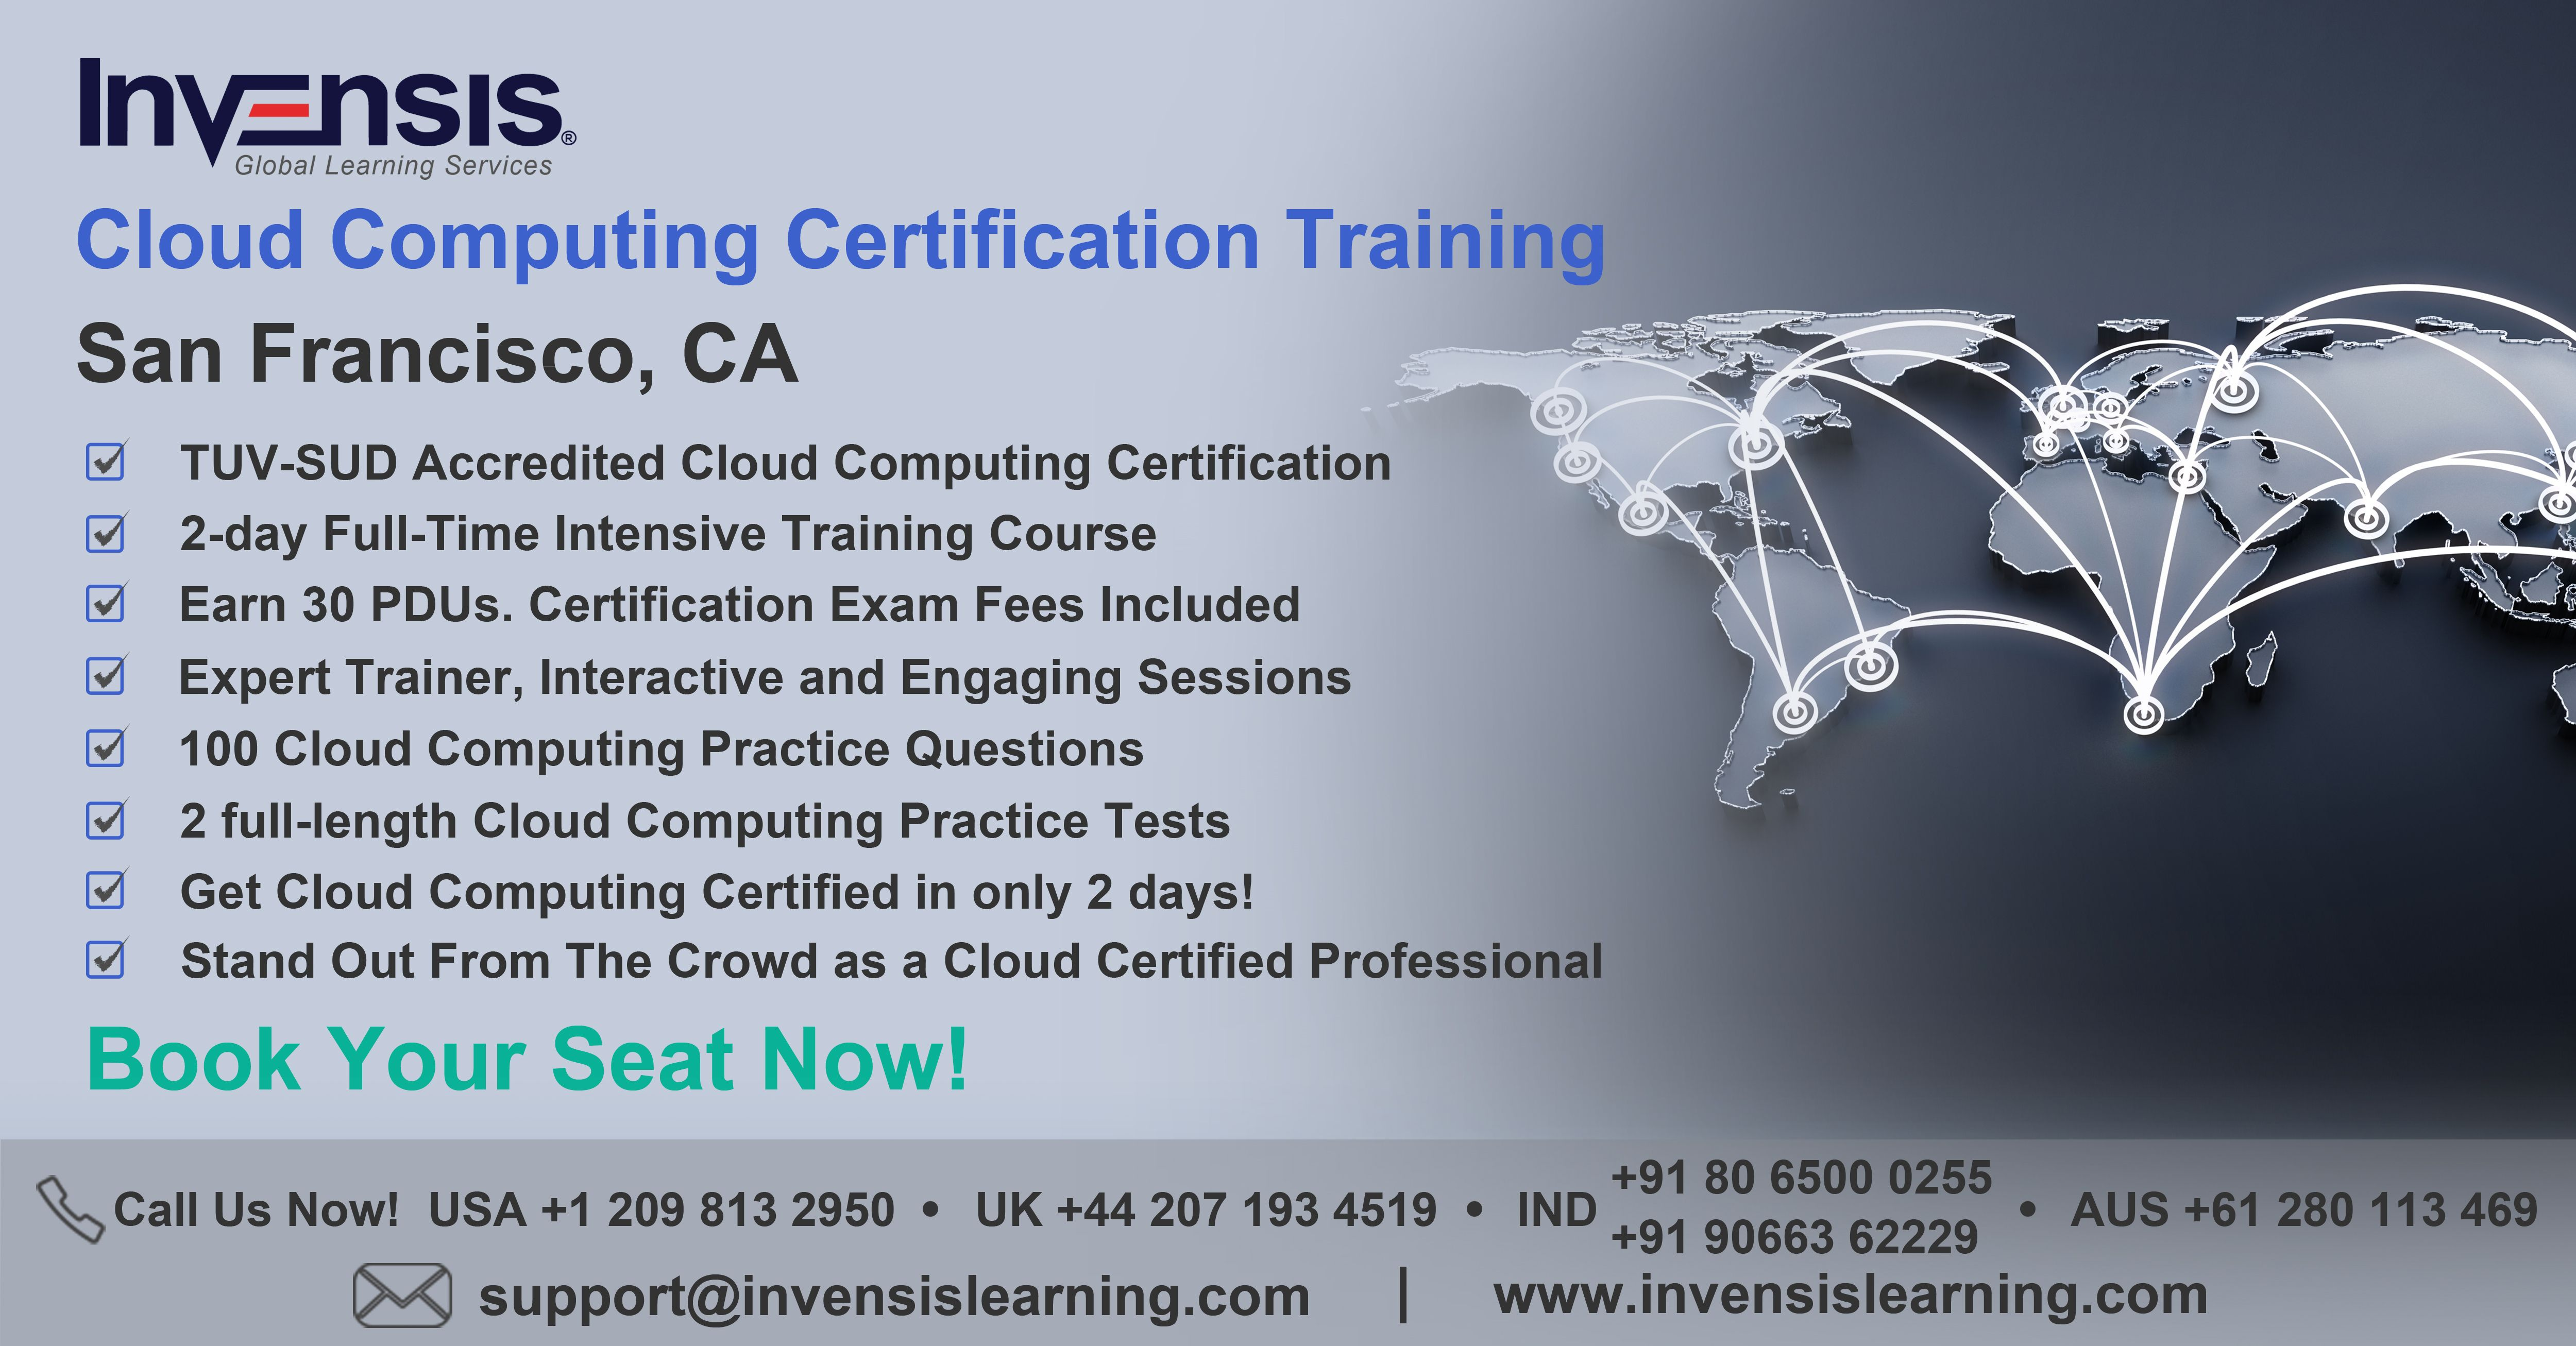 Get tuv sud cloud computing elementar professional tccep invensis learning is conducting a 2 day full time tuv sud accredited cloud computing certification training and exam preparation xflitez Images